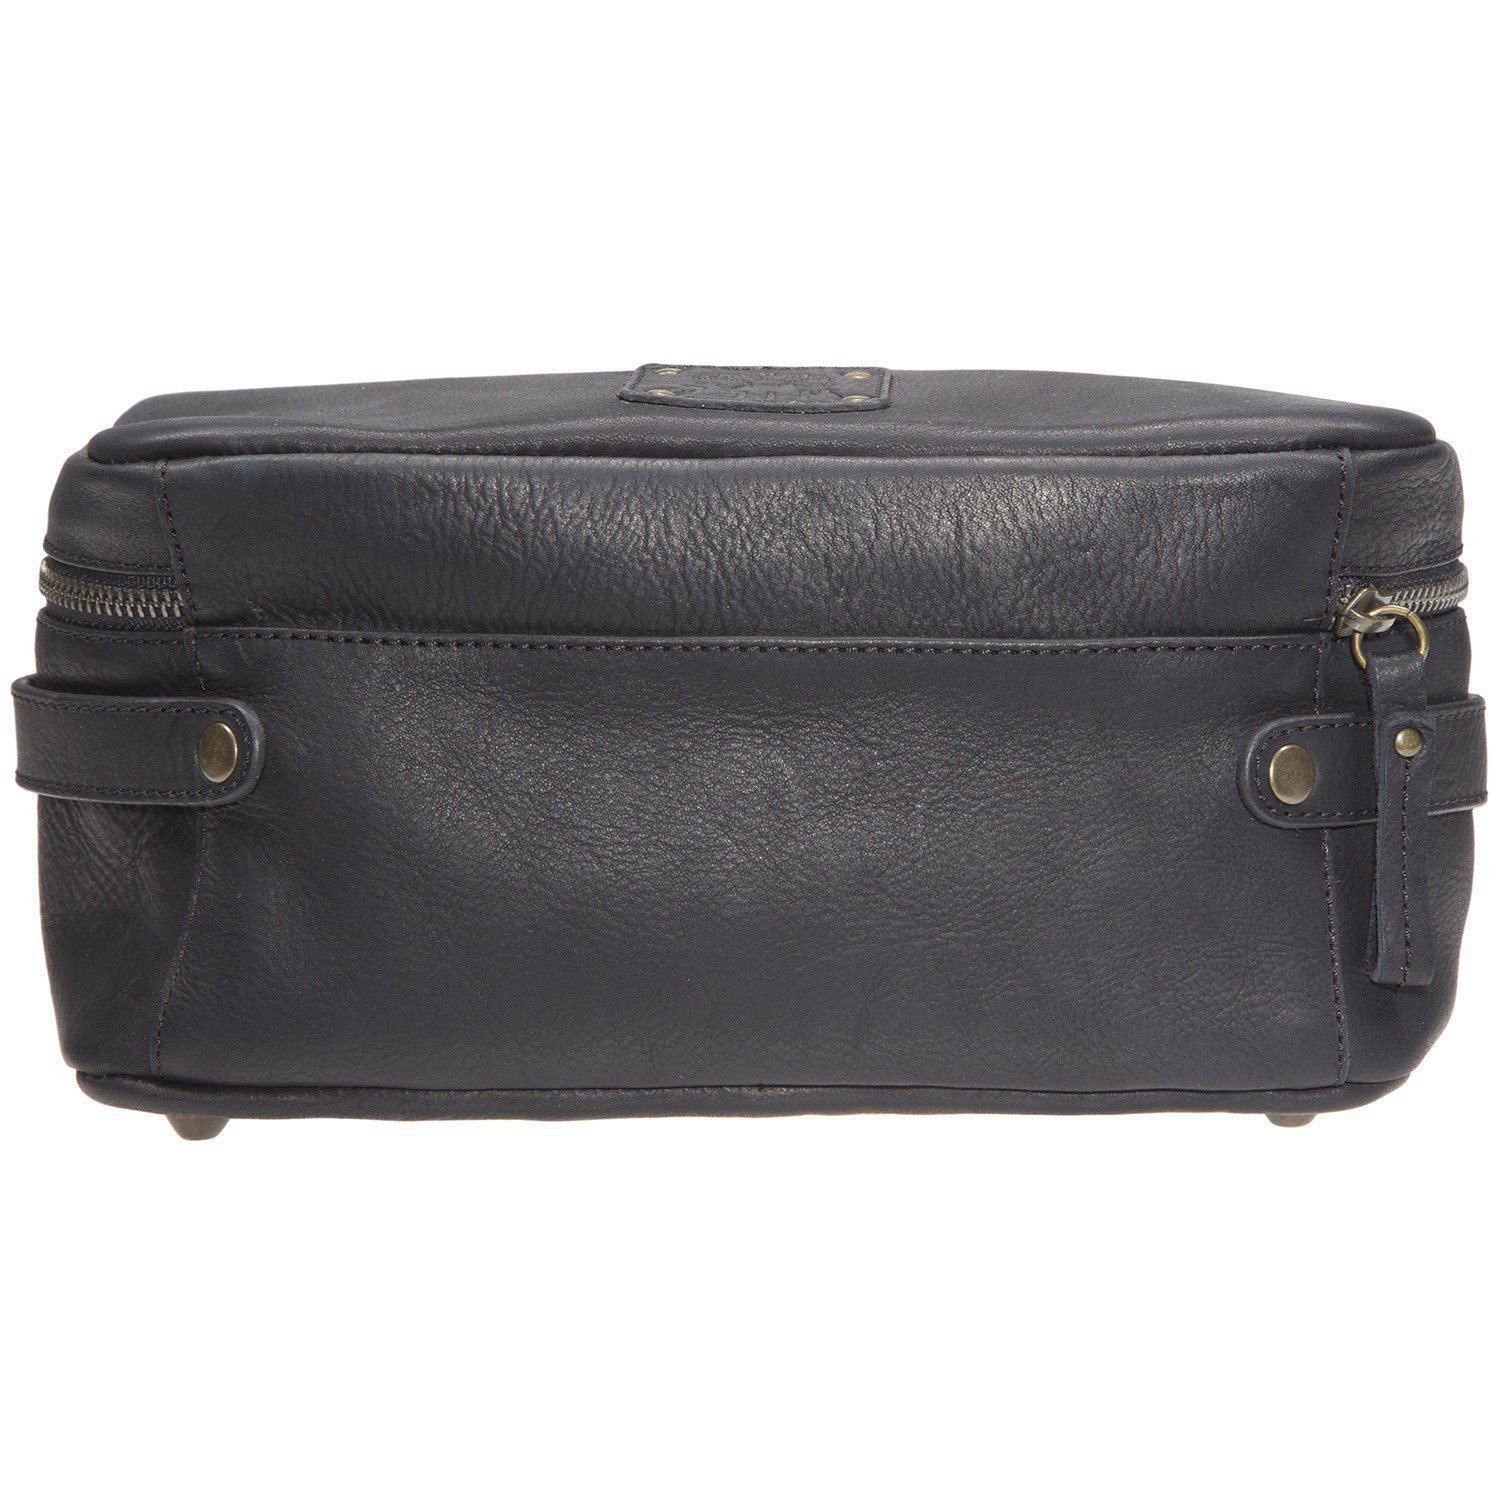 Will Leather Goods Men's Desmond Leather Travel Case - Black